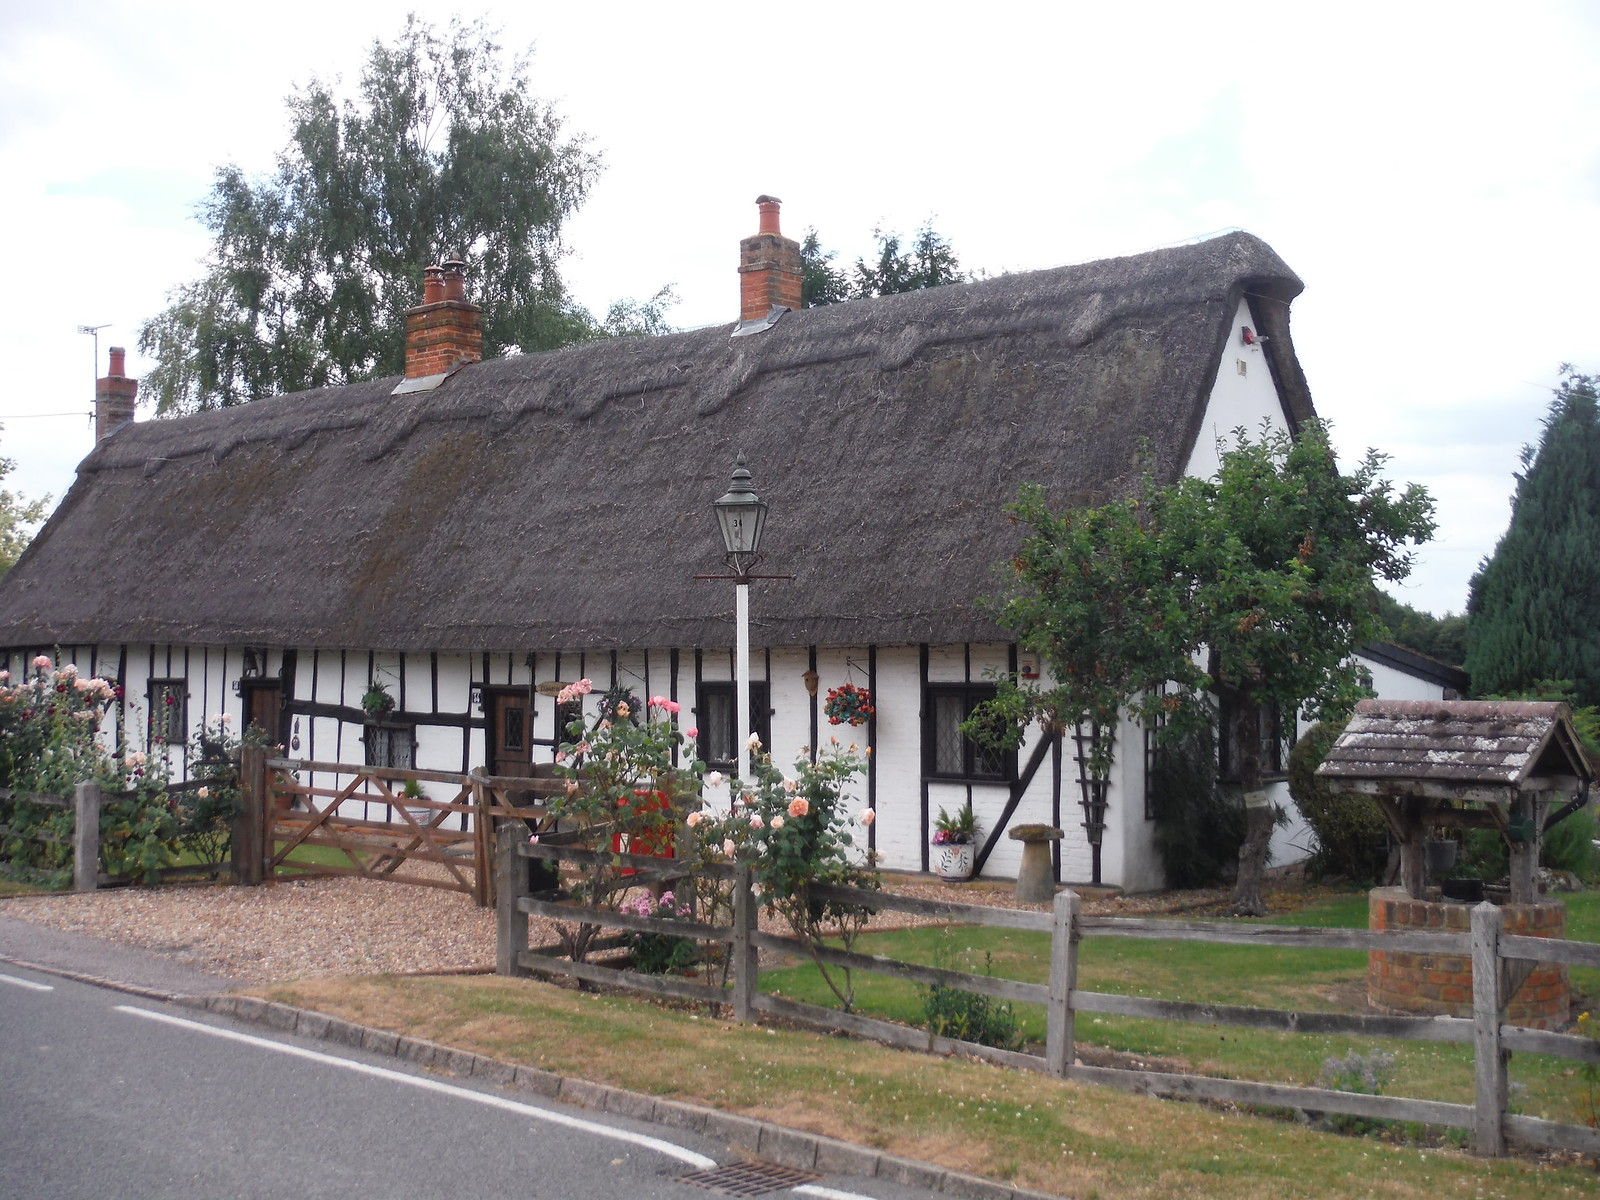 Cottage in Apsley End SWC Walk 233 - Arlesey to Letchworth Garden City